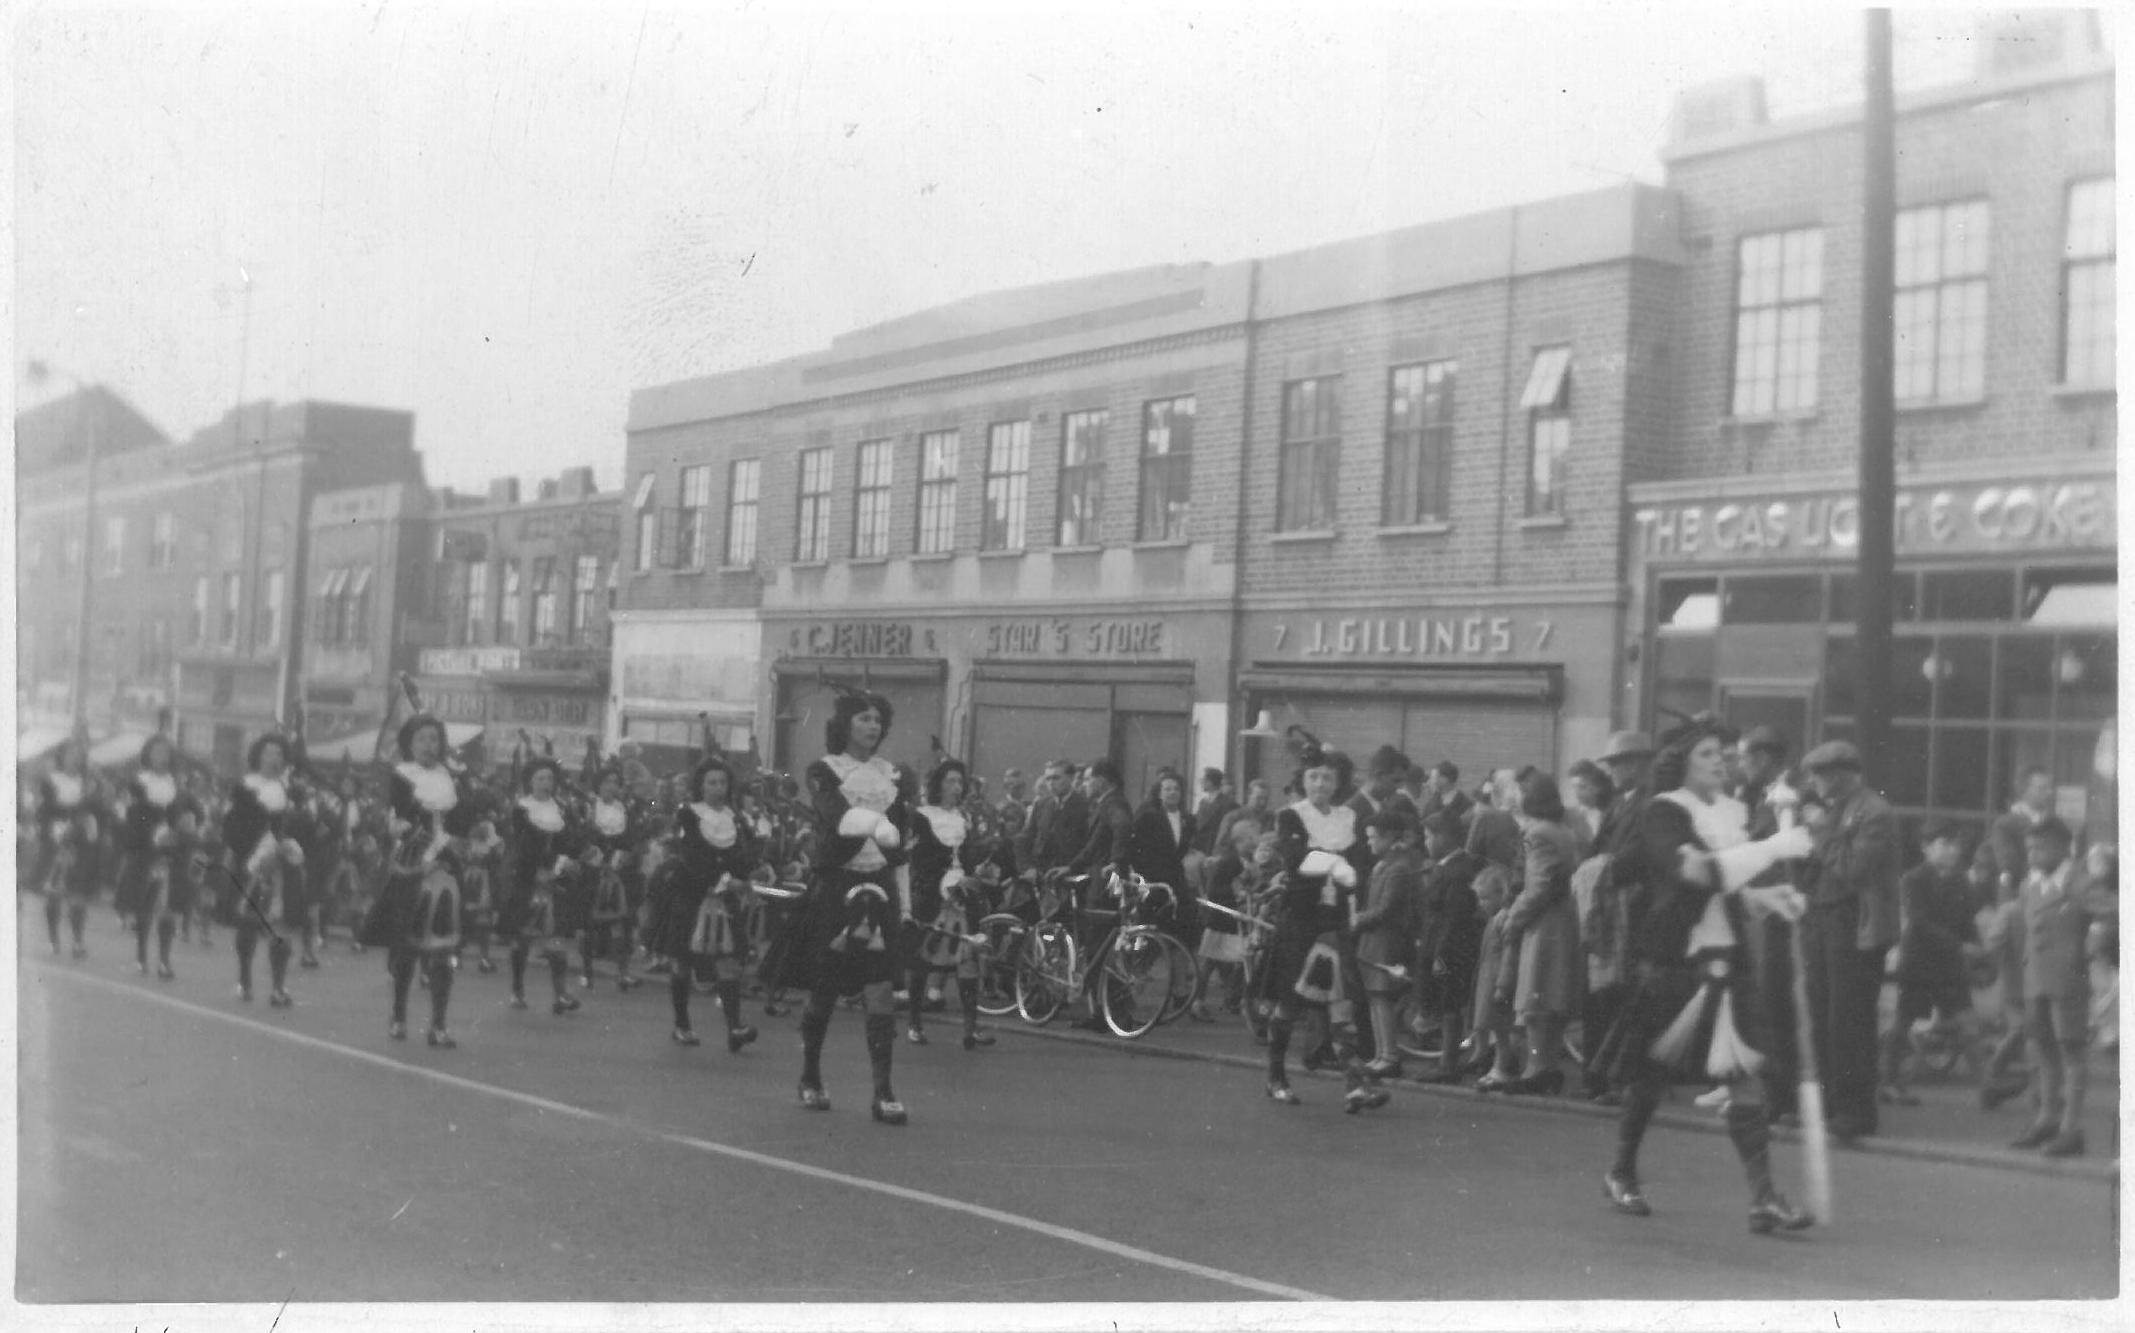 Girl Pipers march on Dagenham Heathway in 1948